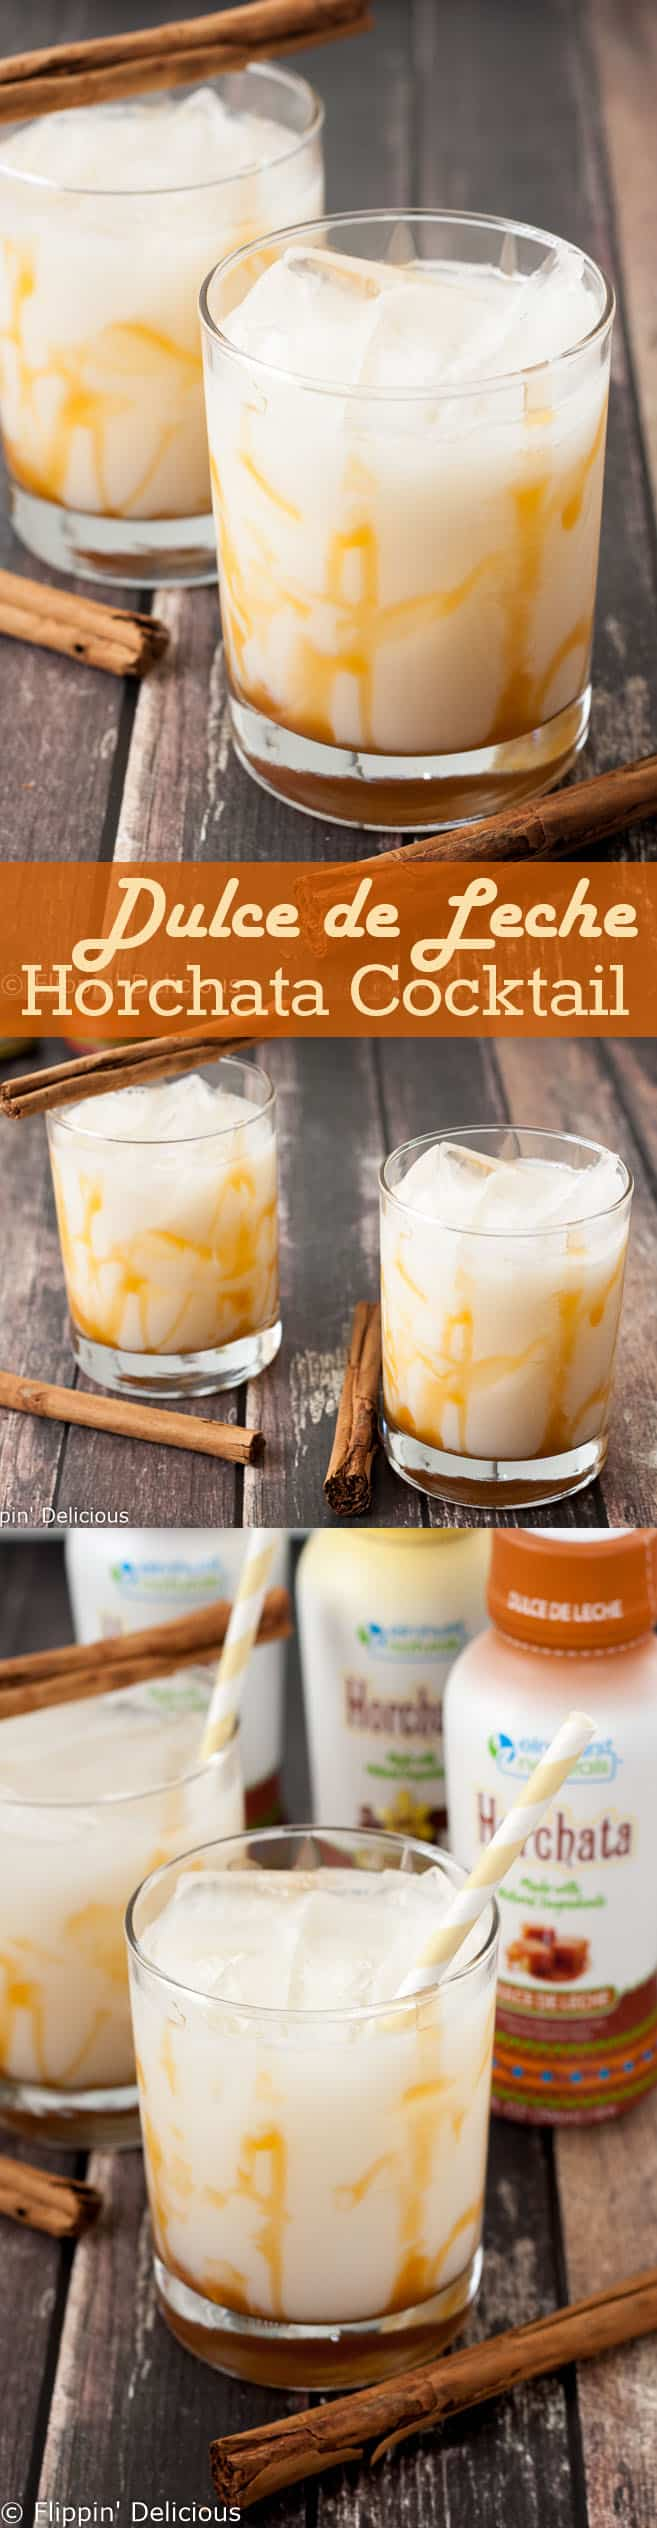 This Easy Dulce De Leche Horchata Cocktail is sweet and nutty with great caramel flavor and just a hint of cinnamon. Celebrate Happy Hour at home!